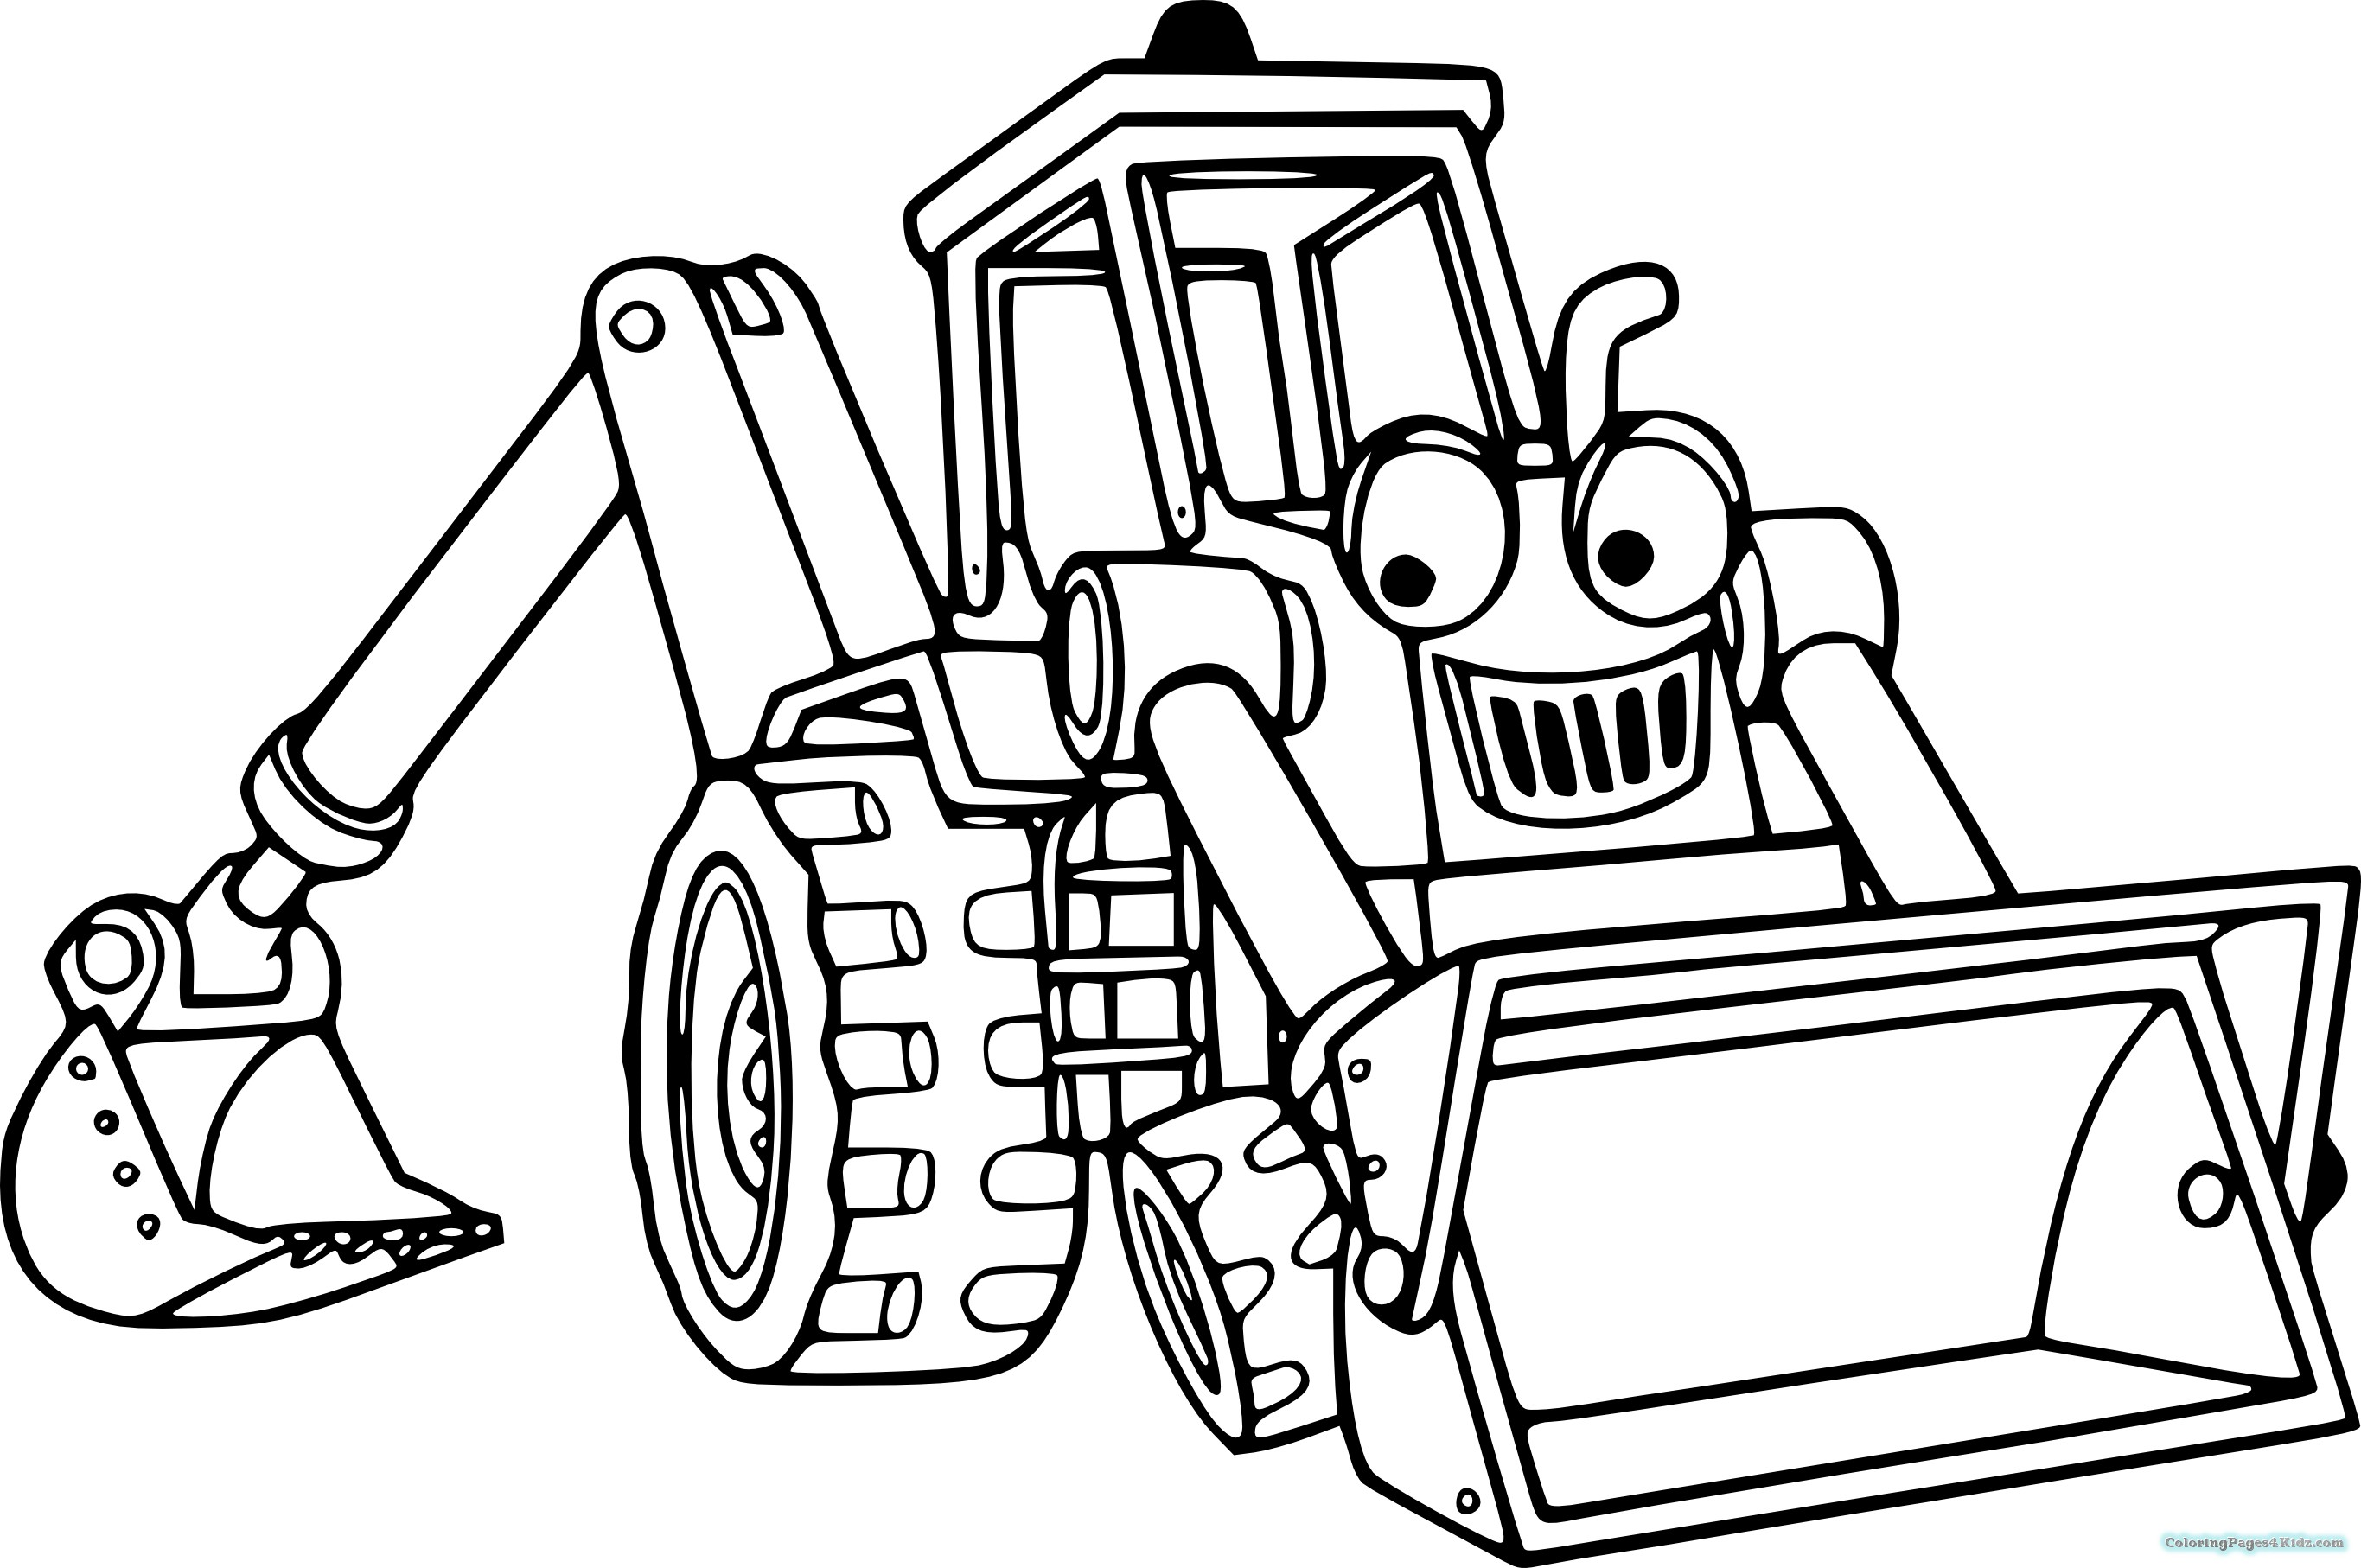 tractor pictures to color tractor drawing for kids at getdrawings free download tractor pictures to color